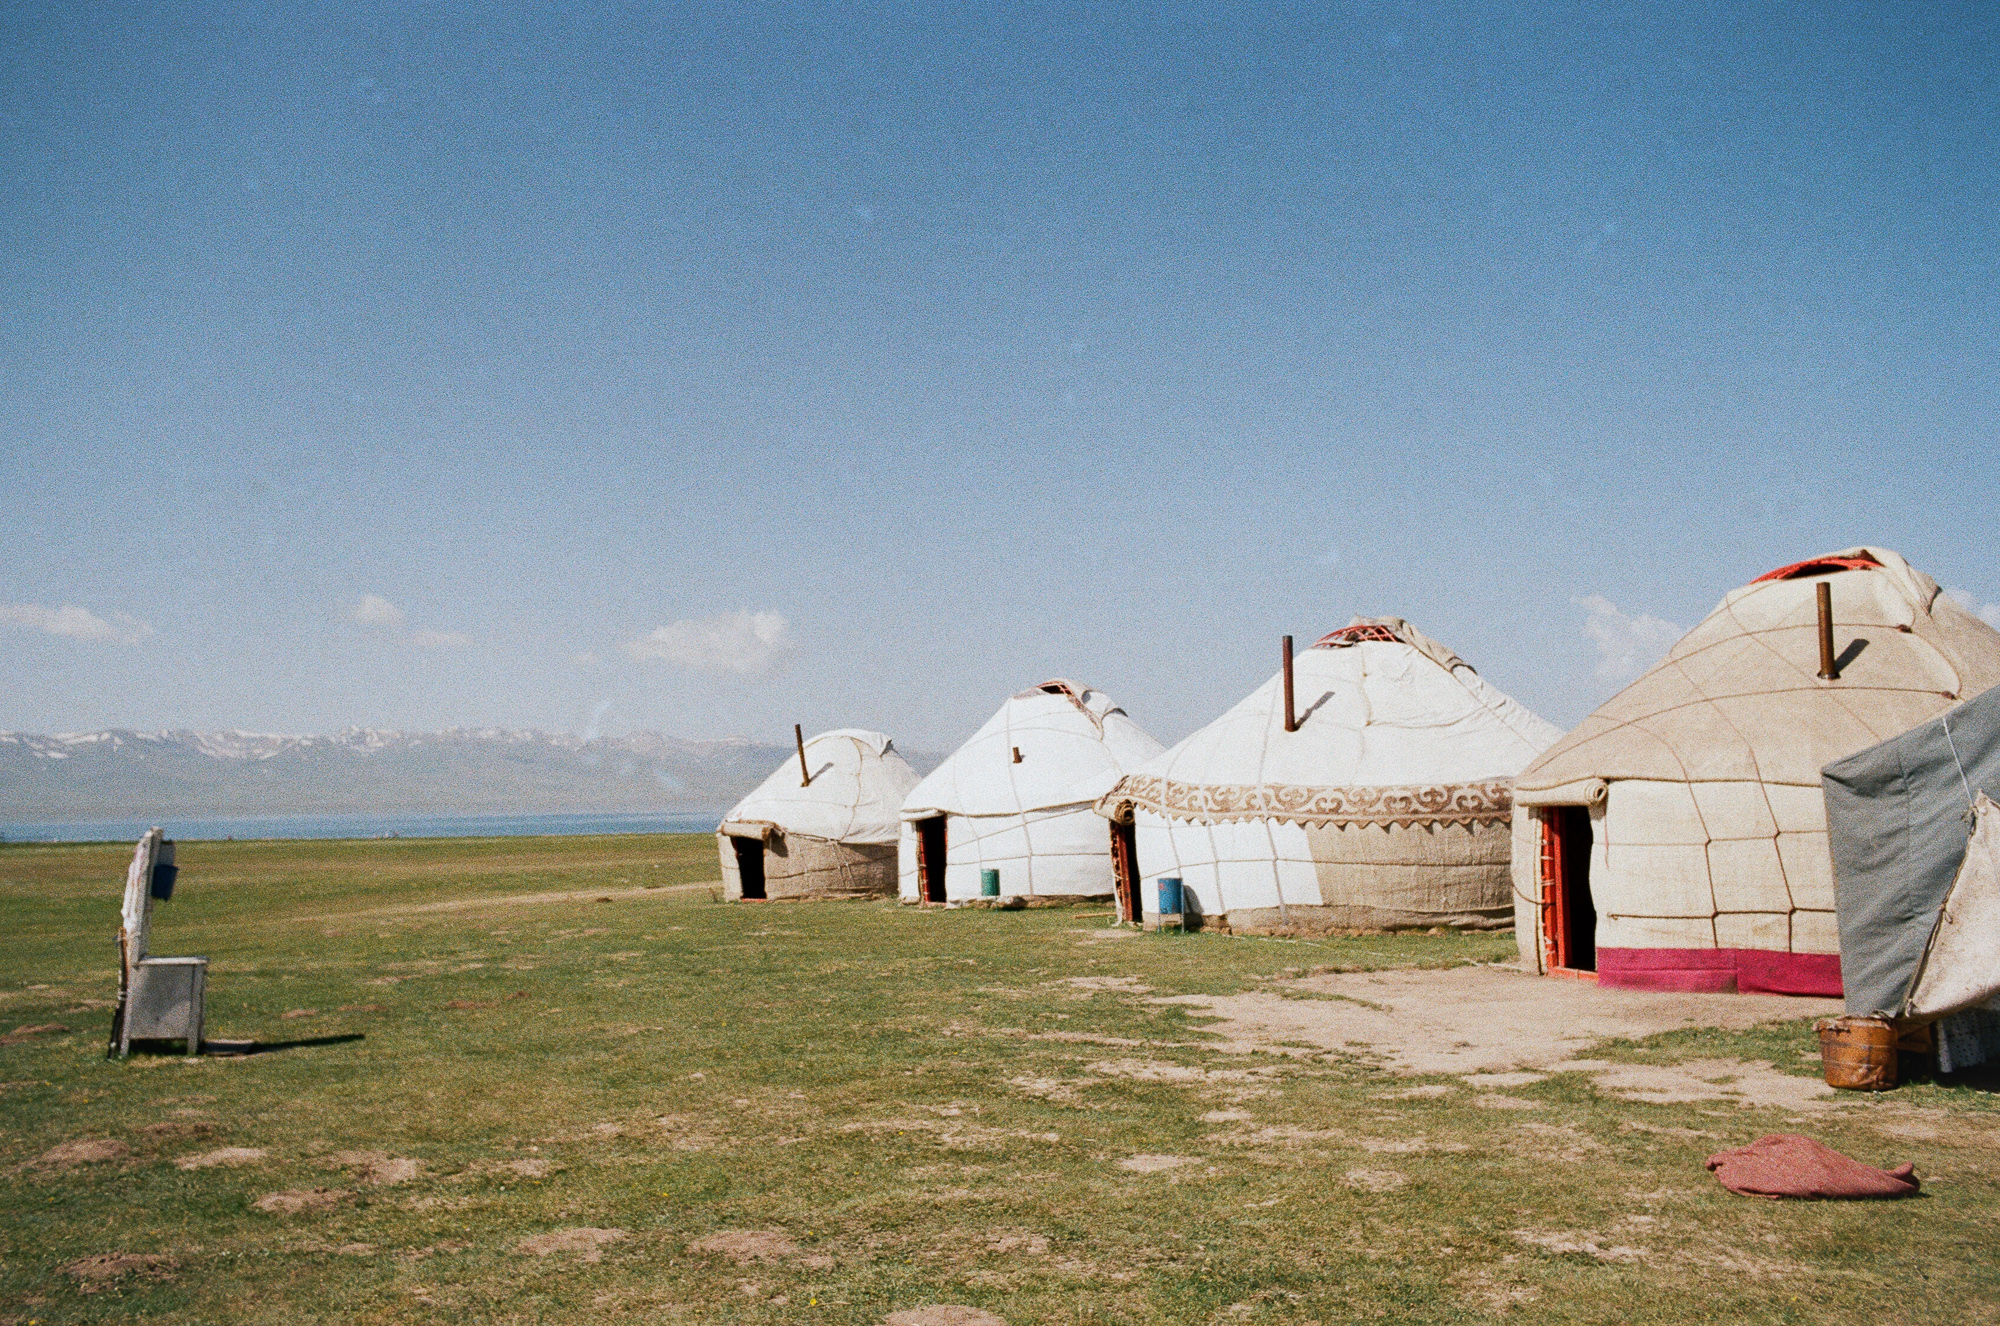 Yurts and a field sink. As you can see there are no electric cables or signs of technology around the settlement